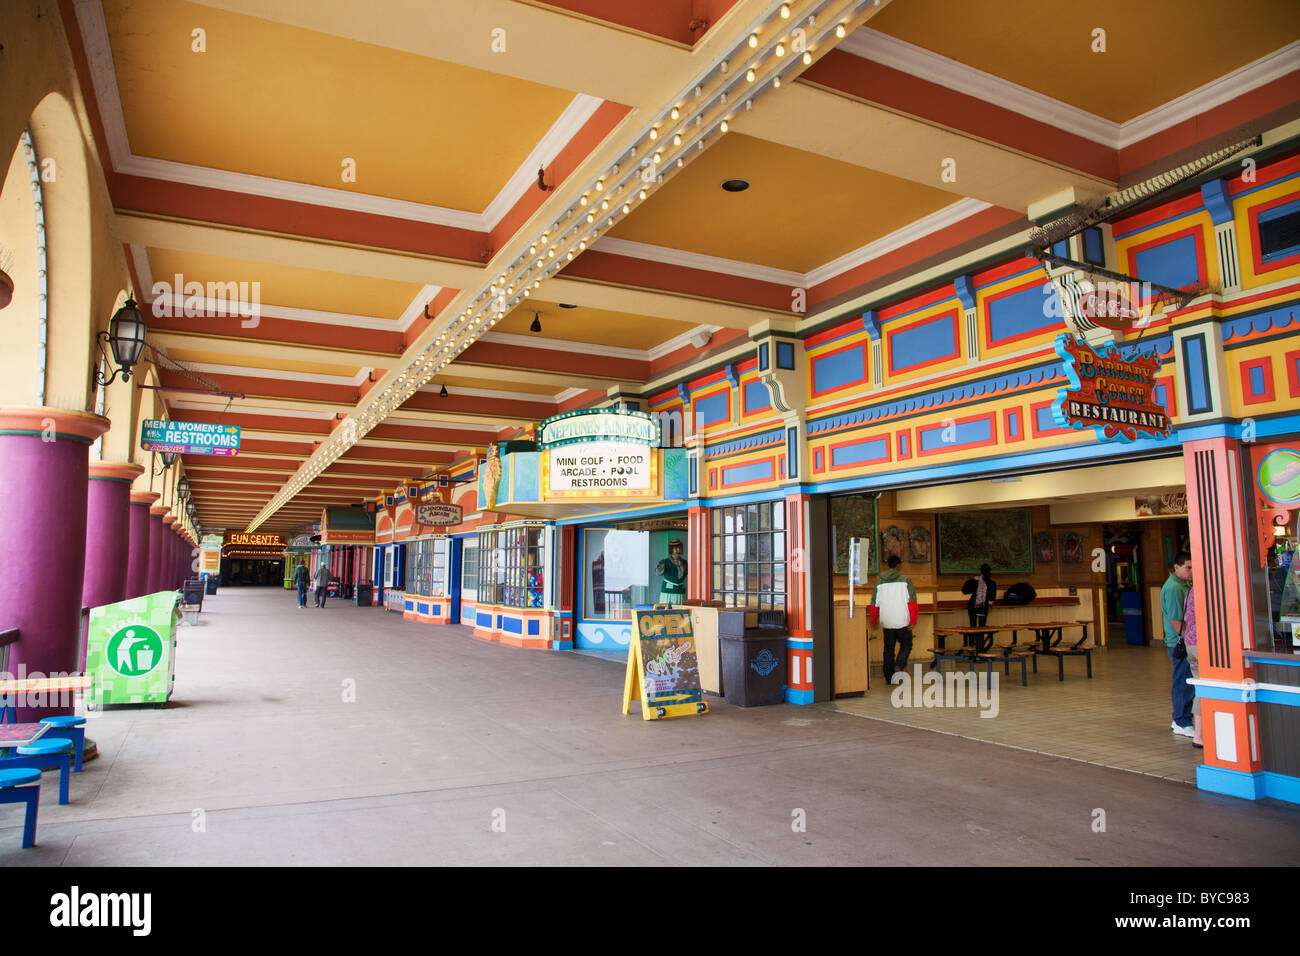 casino arcade at the santa cruz beach boardwalk